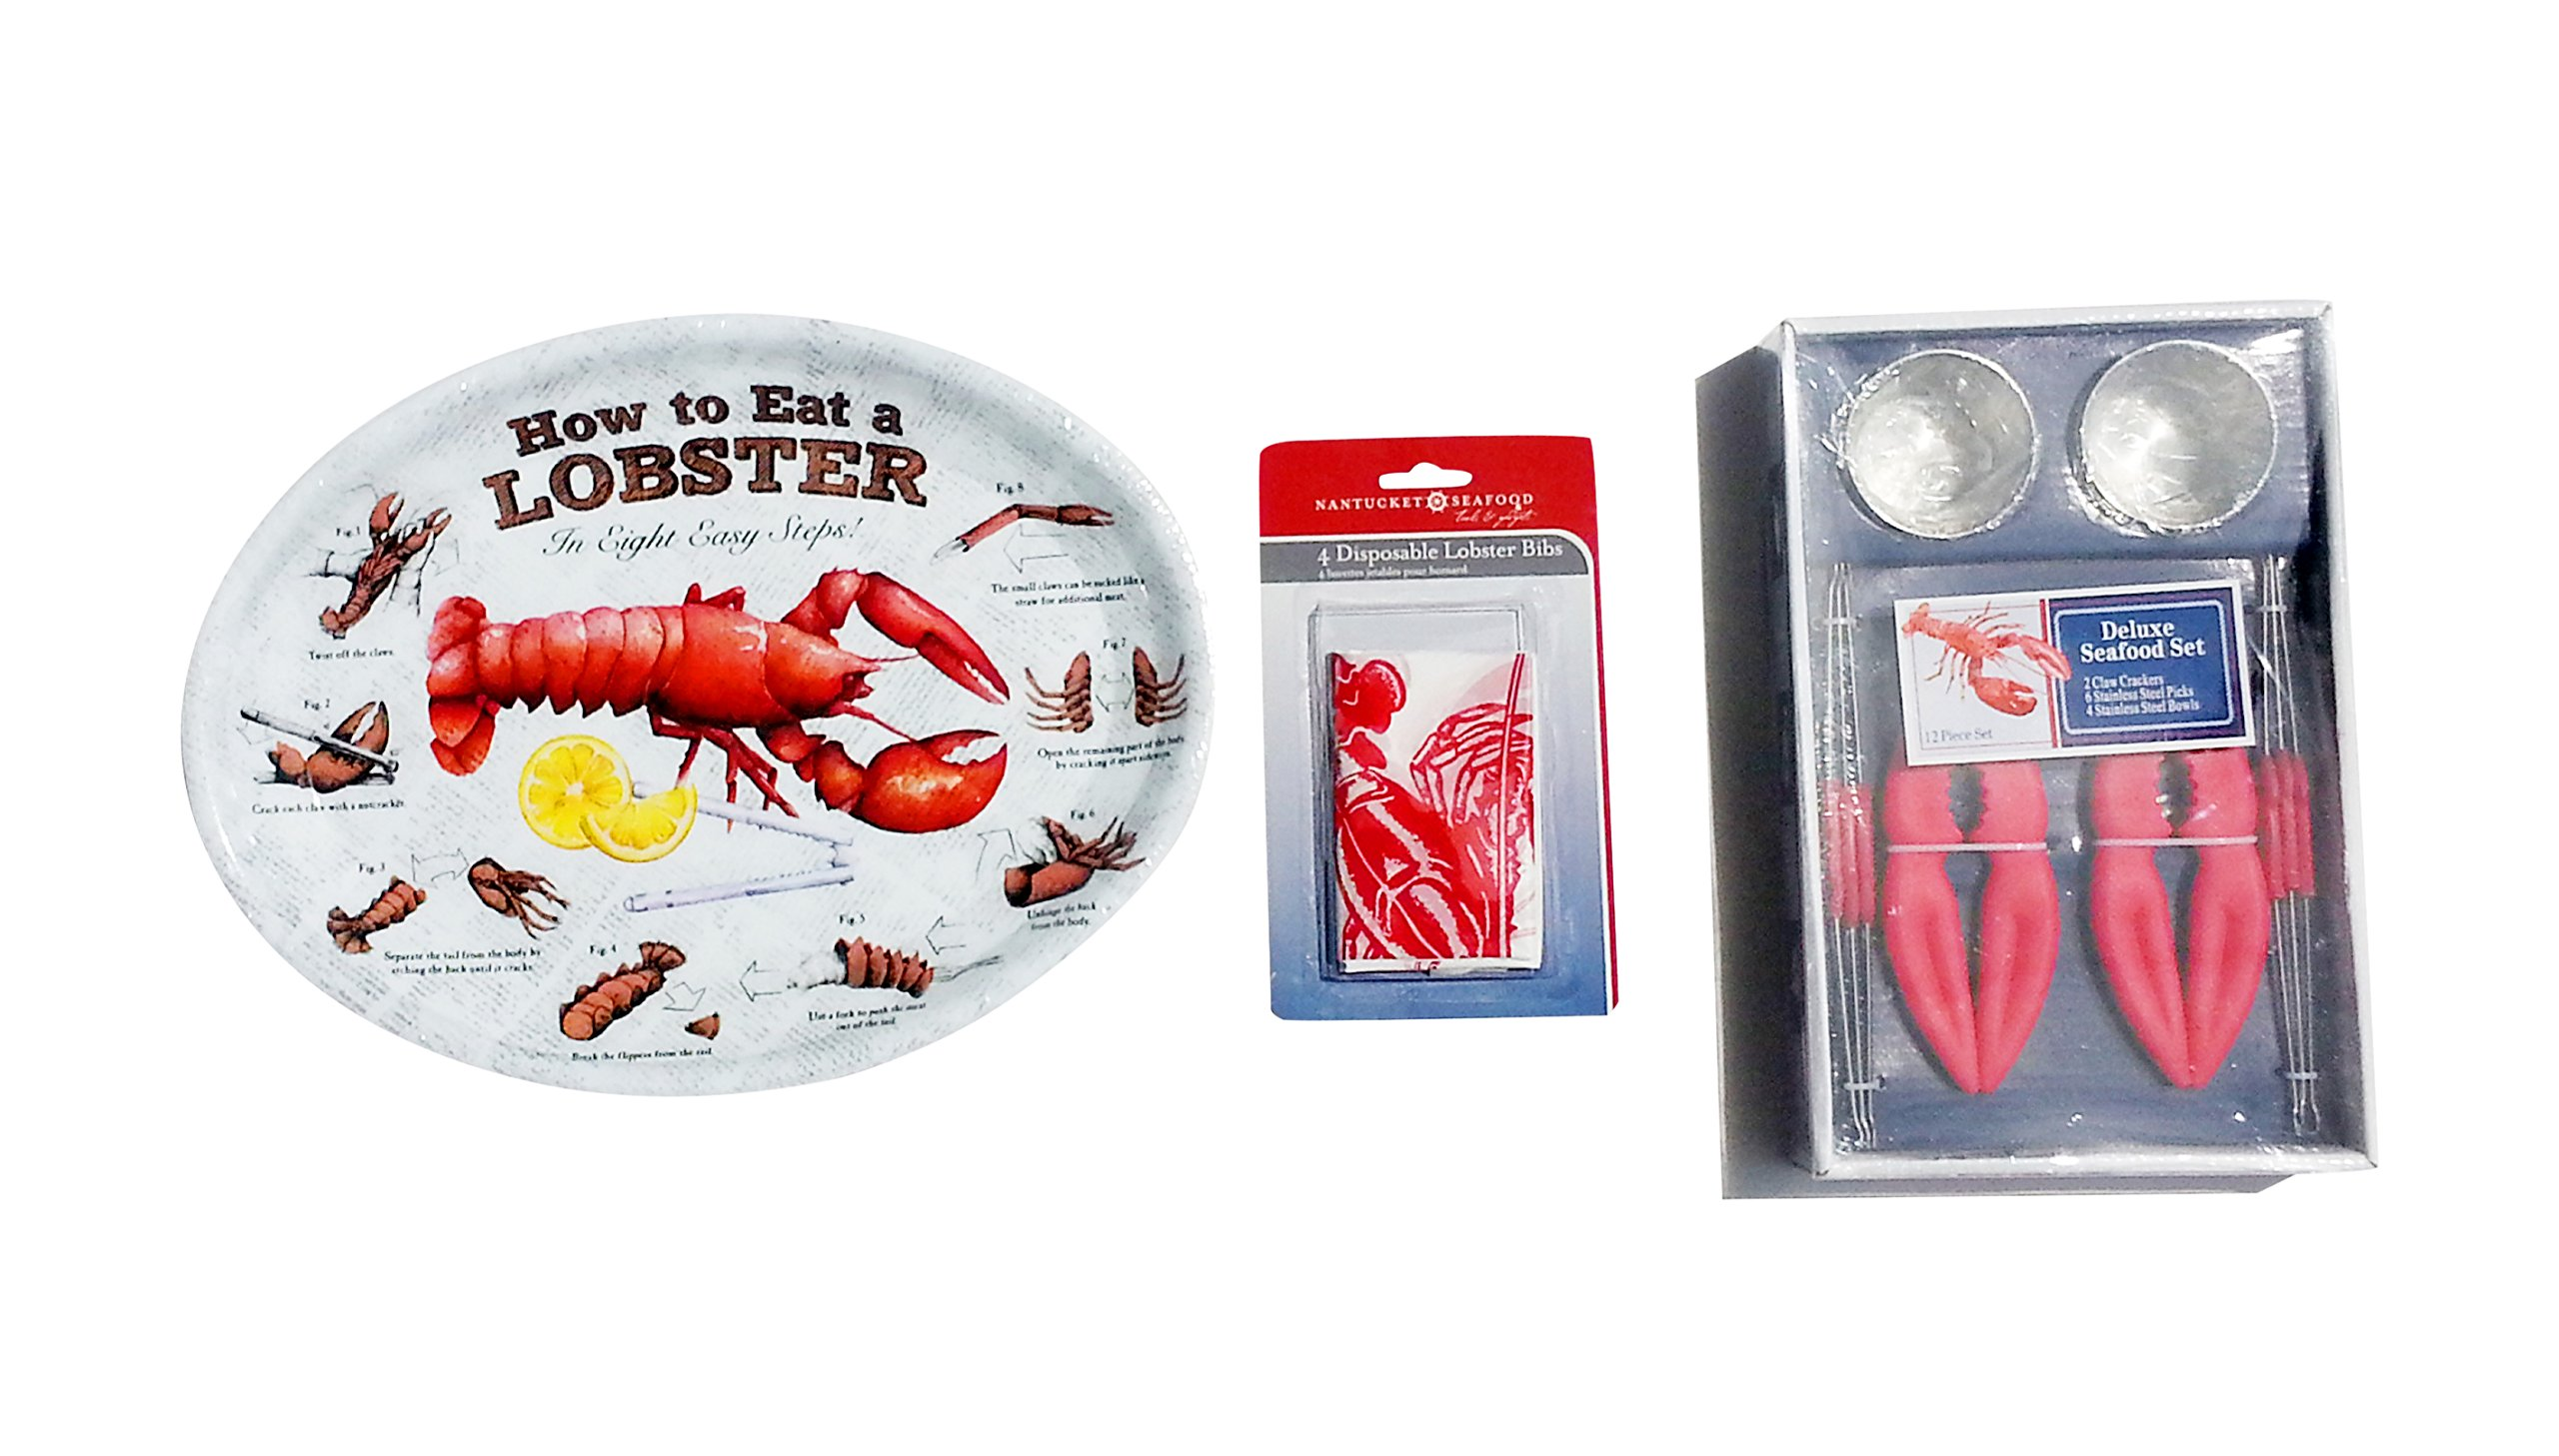 Complete Lobster Cracker and Dinner Set for 4 - Plates, Crackers, Butter Cups, Bibs and Picks